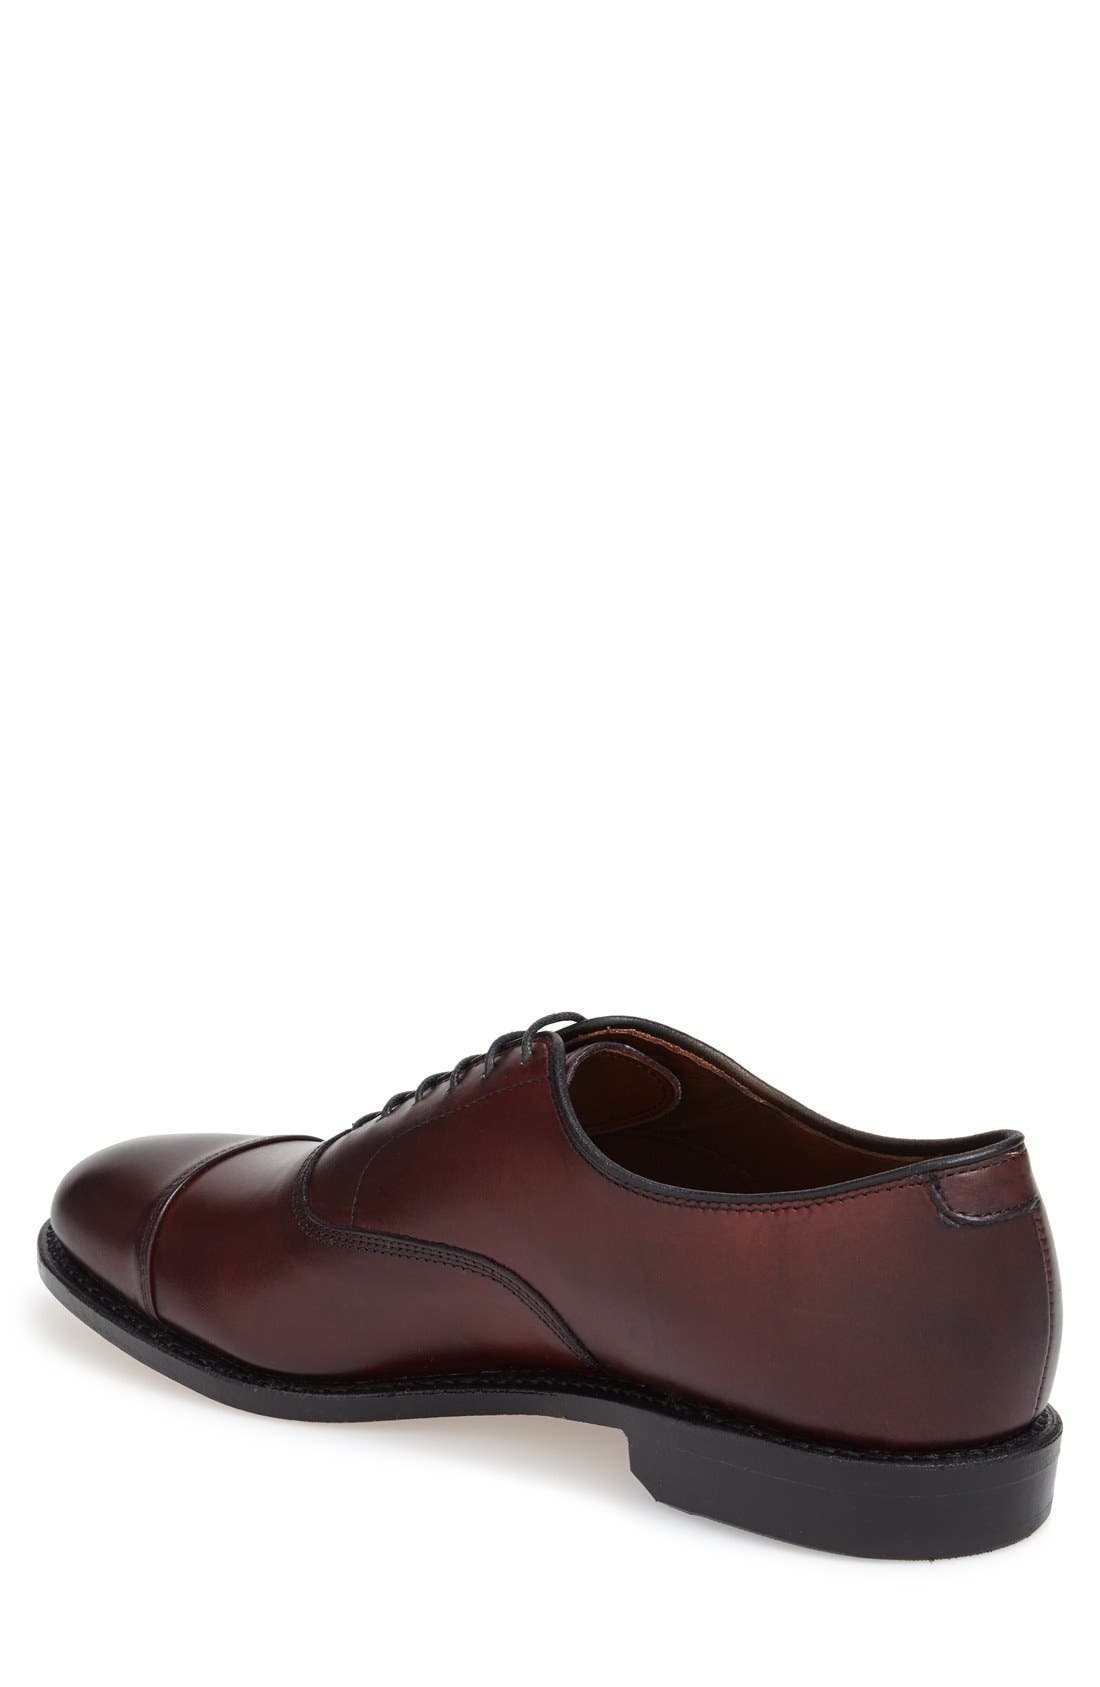 'Park Avenue' Cap Toe Oxford,                             Alternate thumbnail 2, color,                             Oxblood